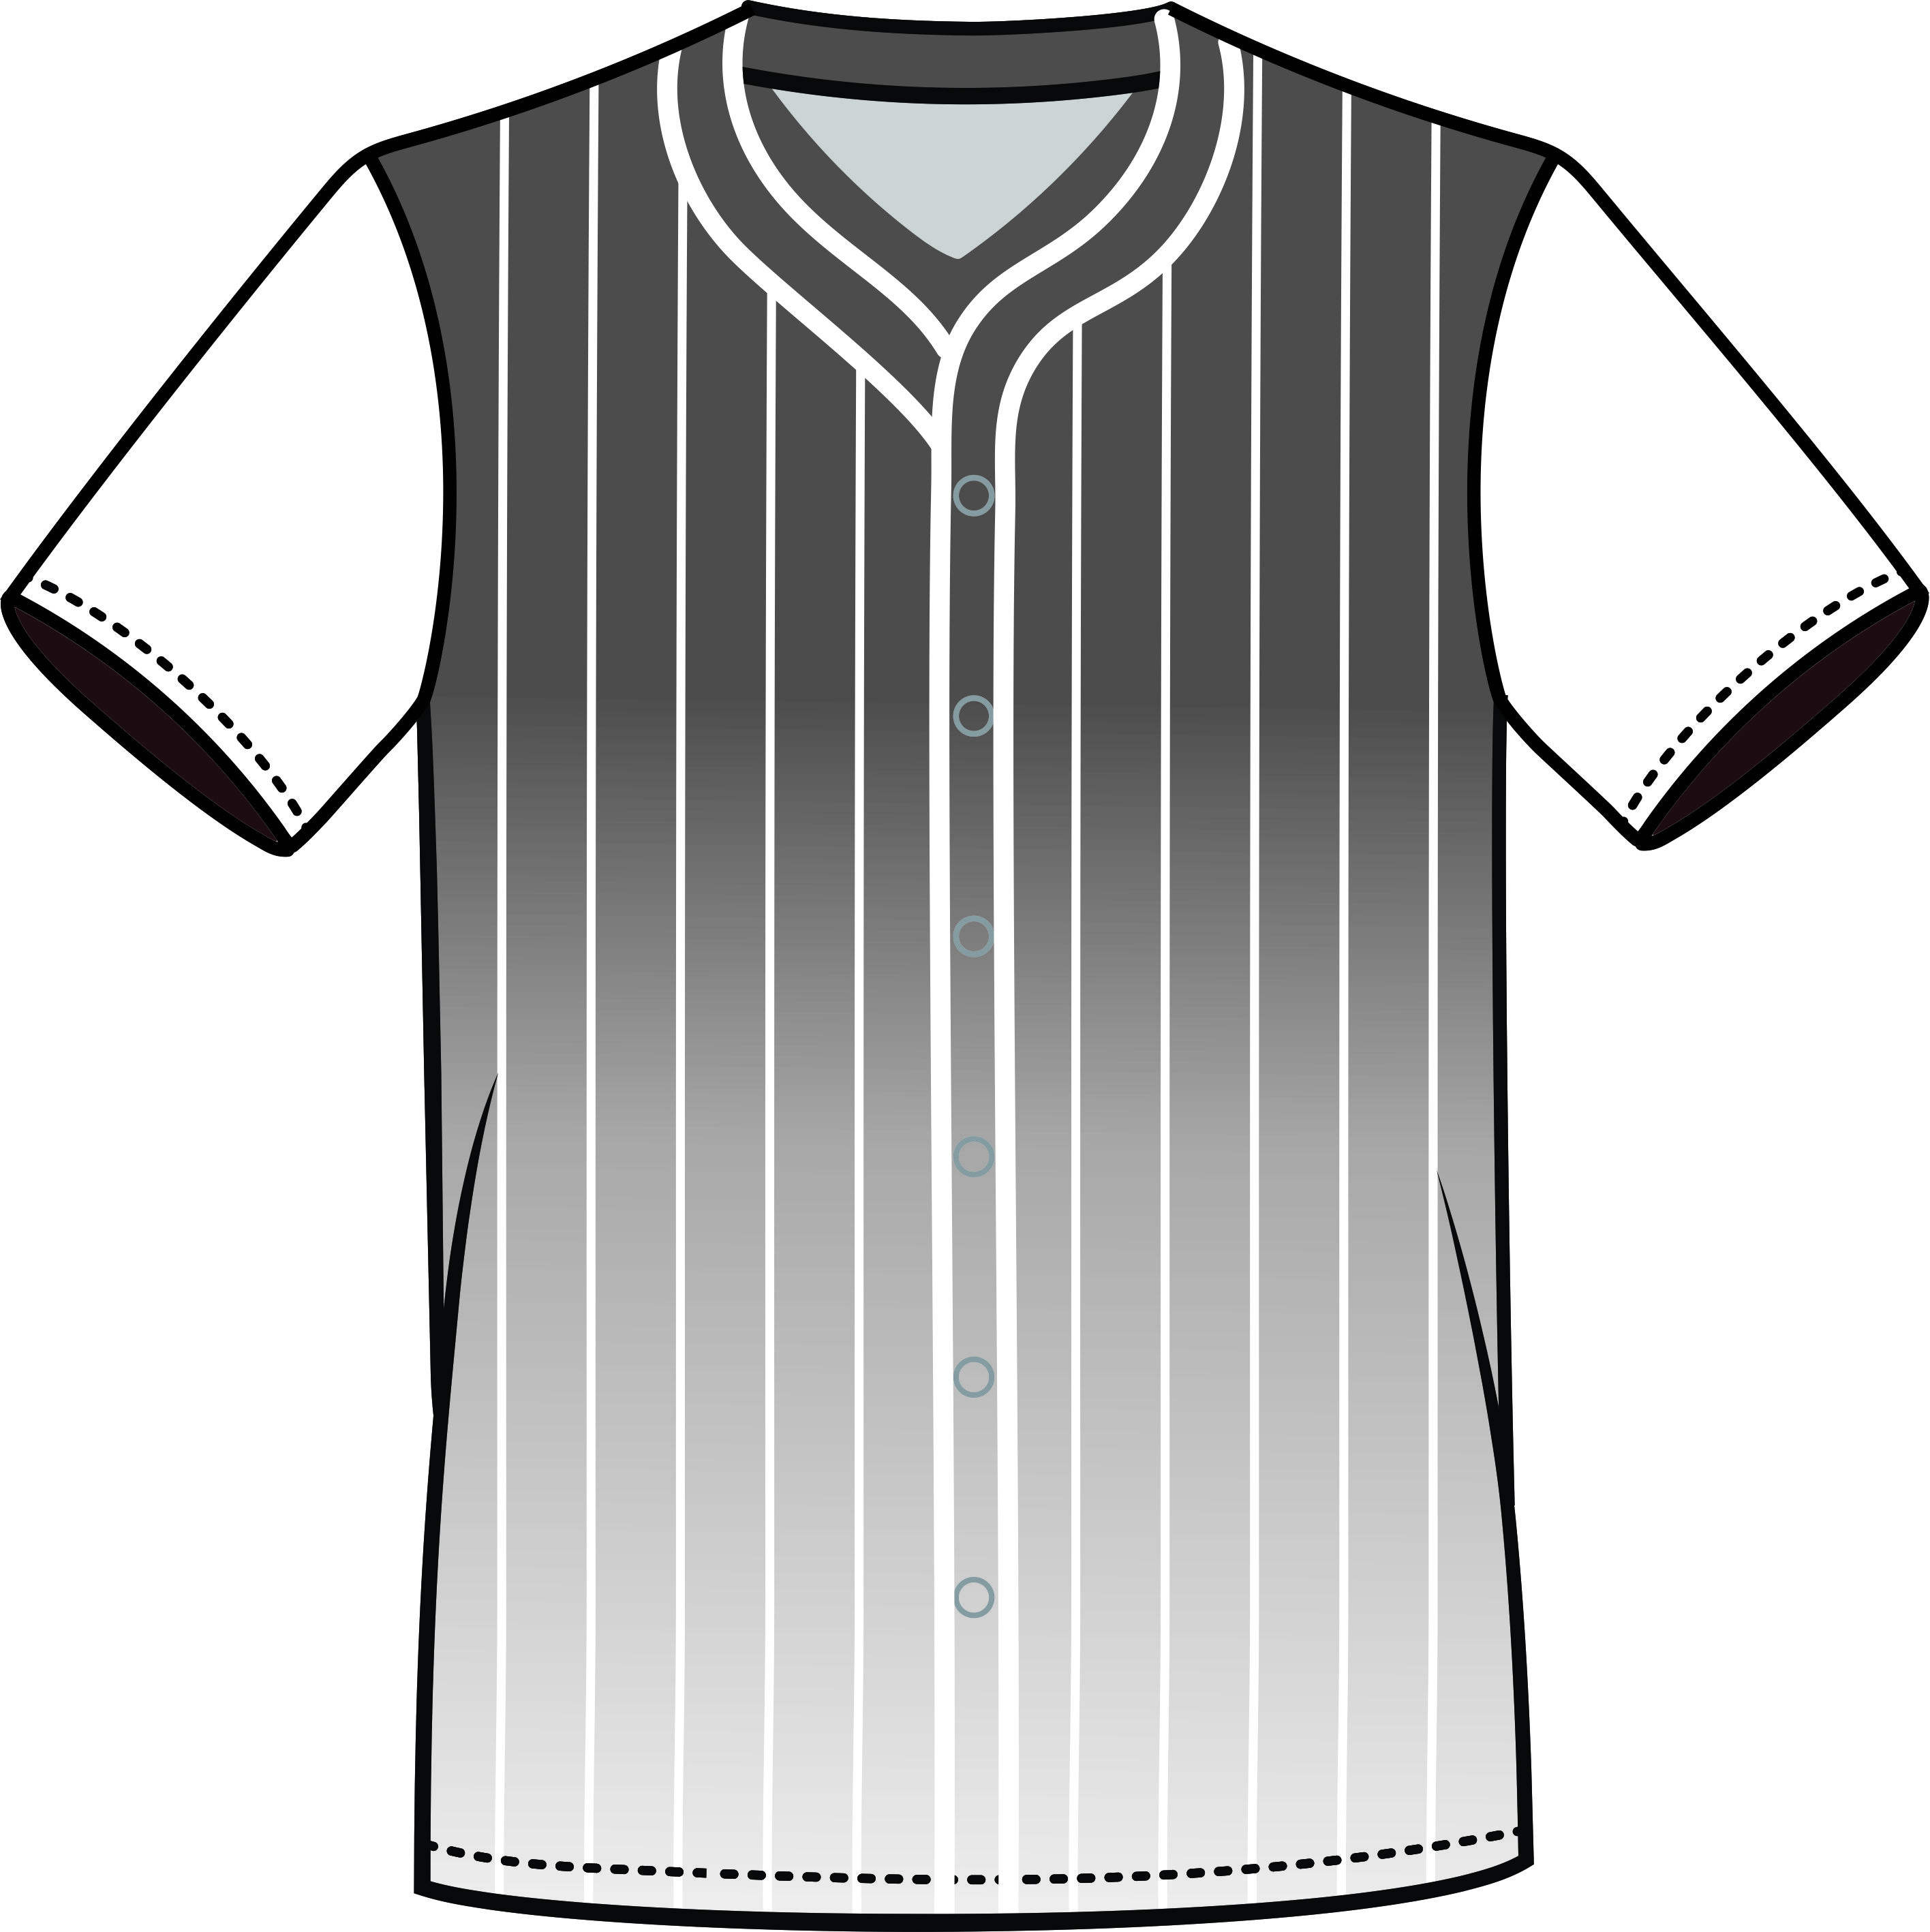 baseball jersey dress / BASEBALL FLOW GRAY & WHITE